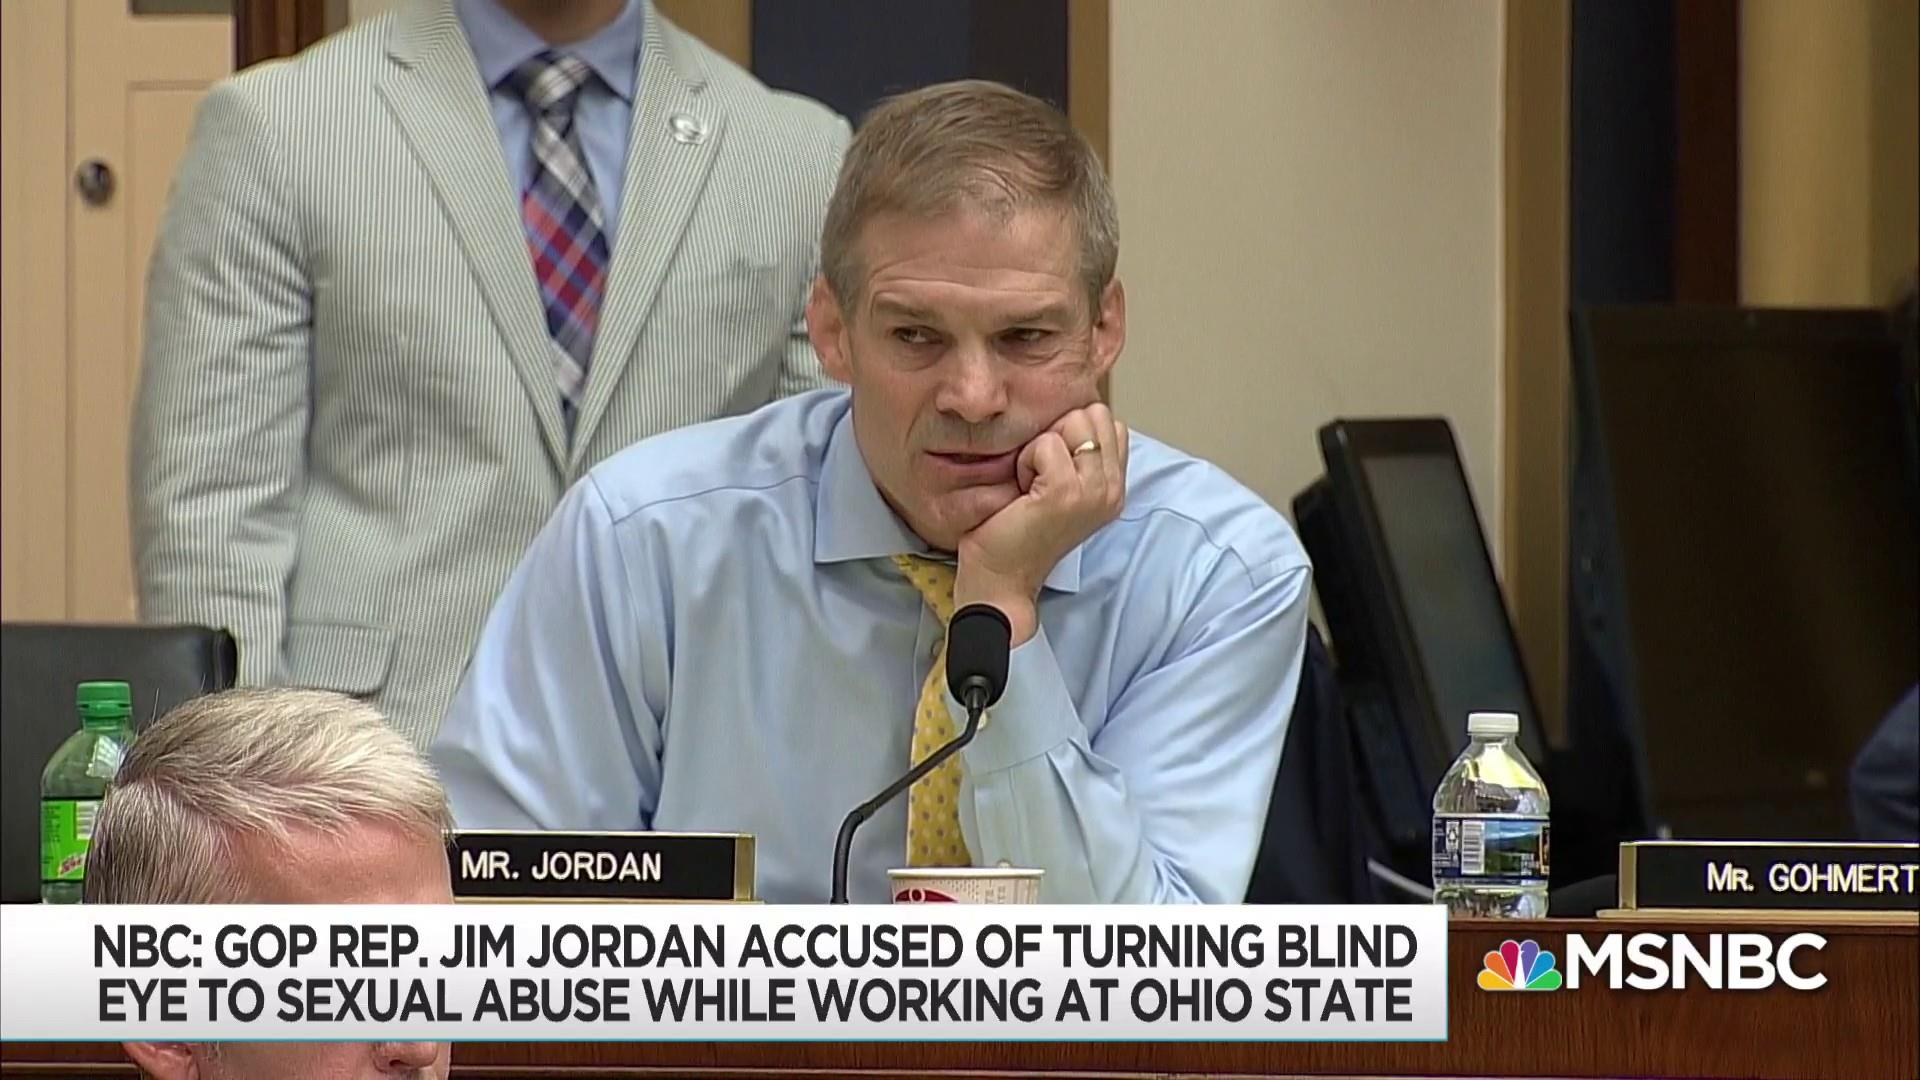 GOP Rep. Jim Jordan accused of ignoring sexual abuse of wrestlers